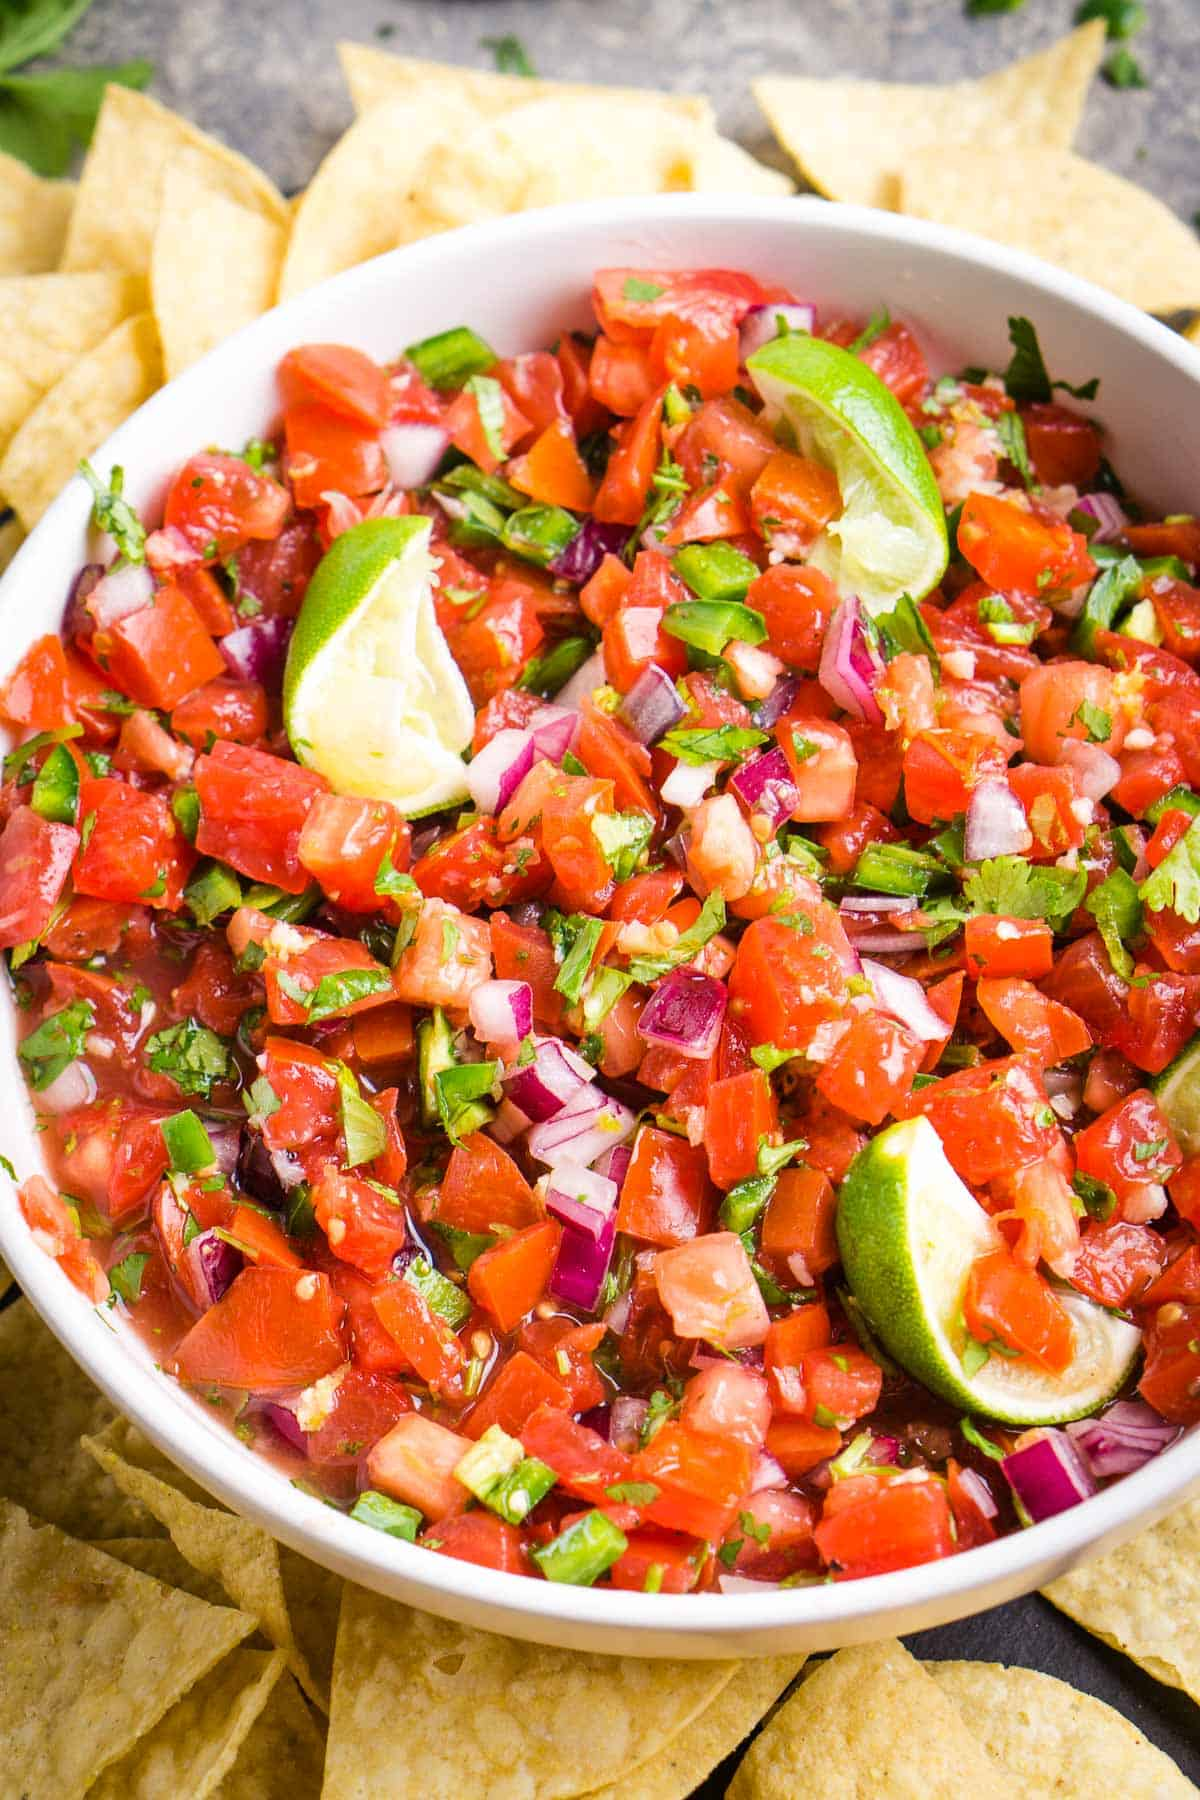 pico de gallo in white serving bowl surrounded by tortilla chips